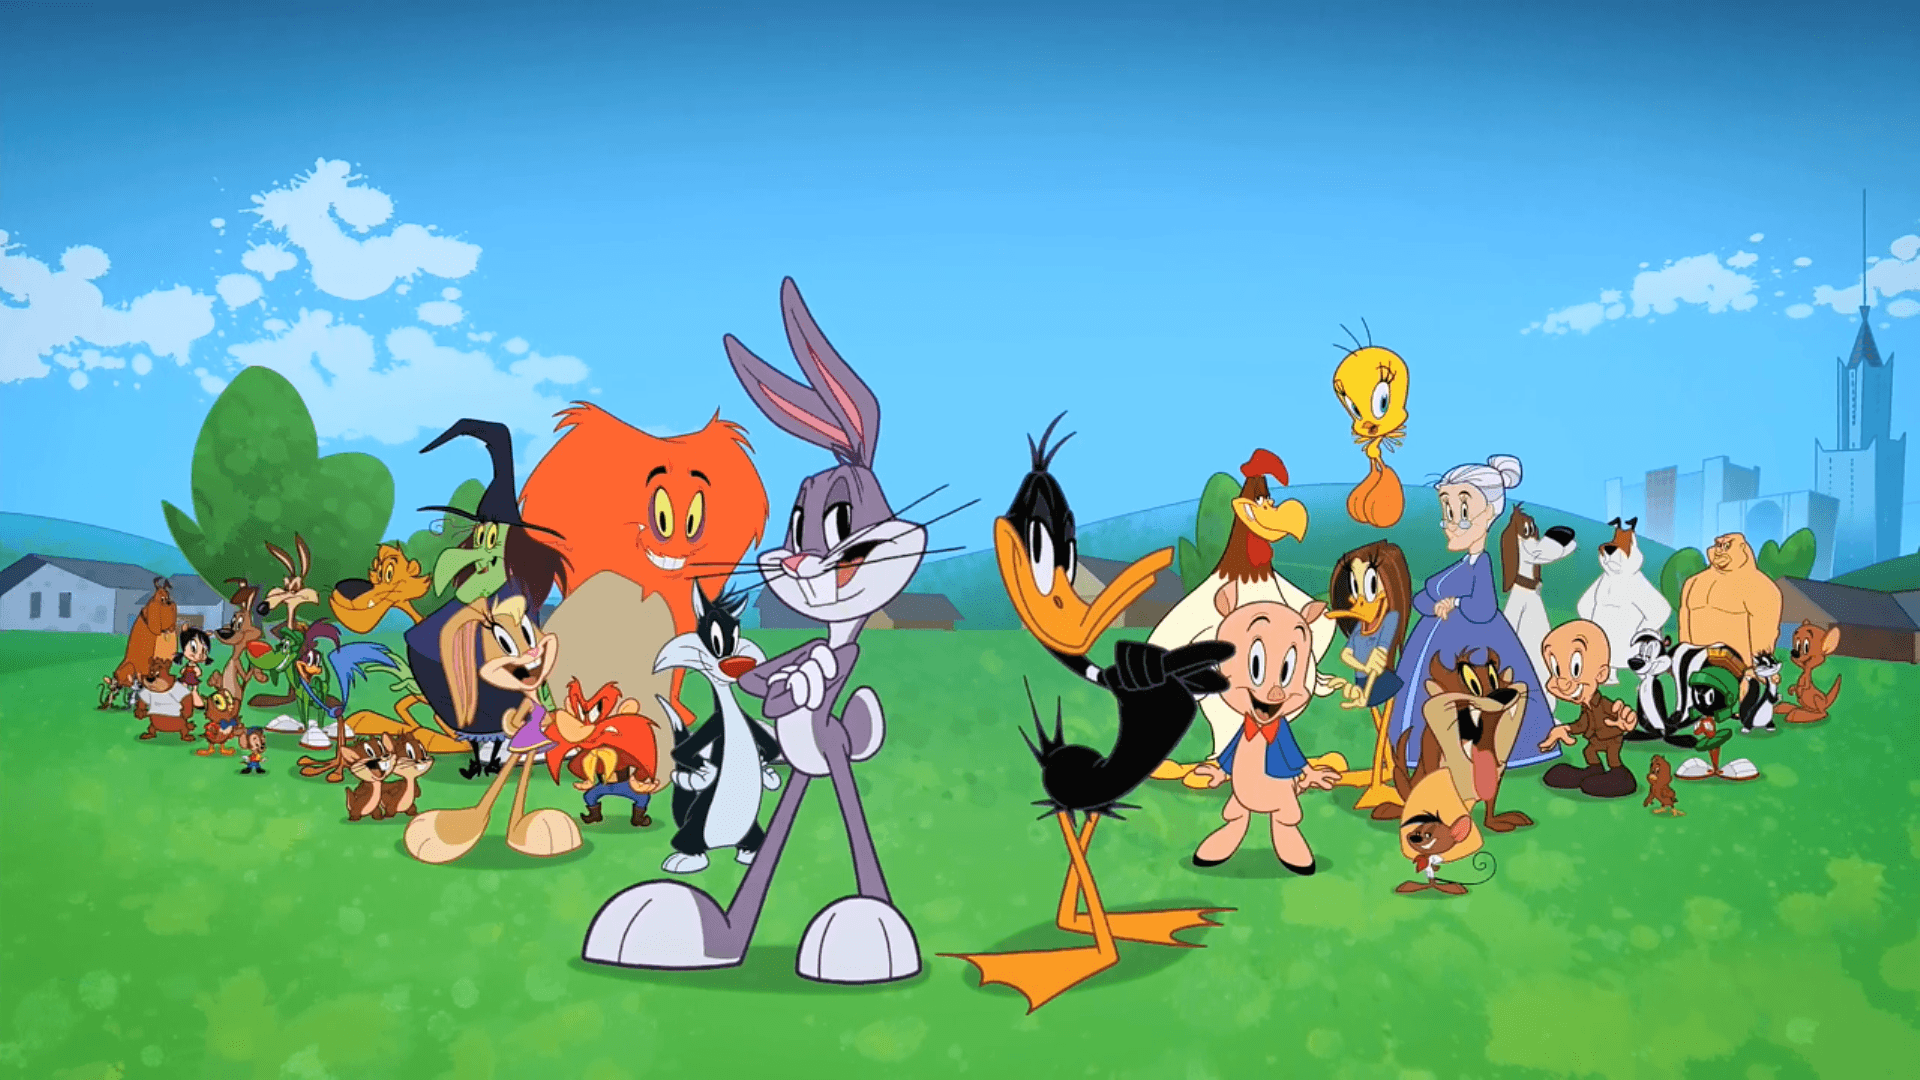 Screensavers And Wallpapers For Computers 57 Images: Looney Tunes Wallpaper Screensavers (57 Images